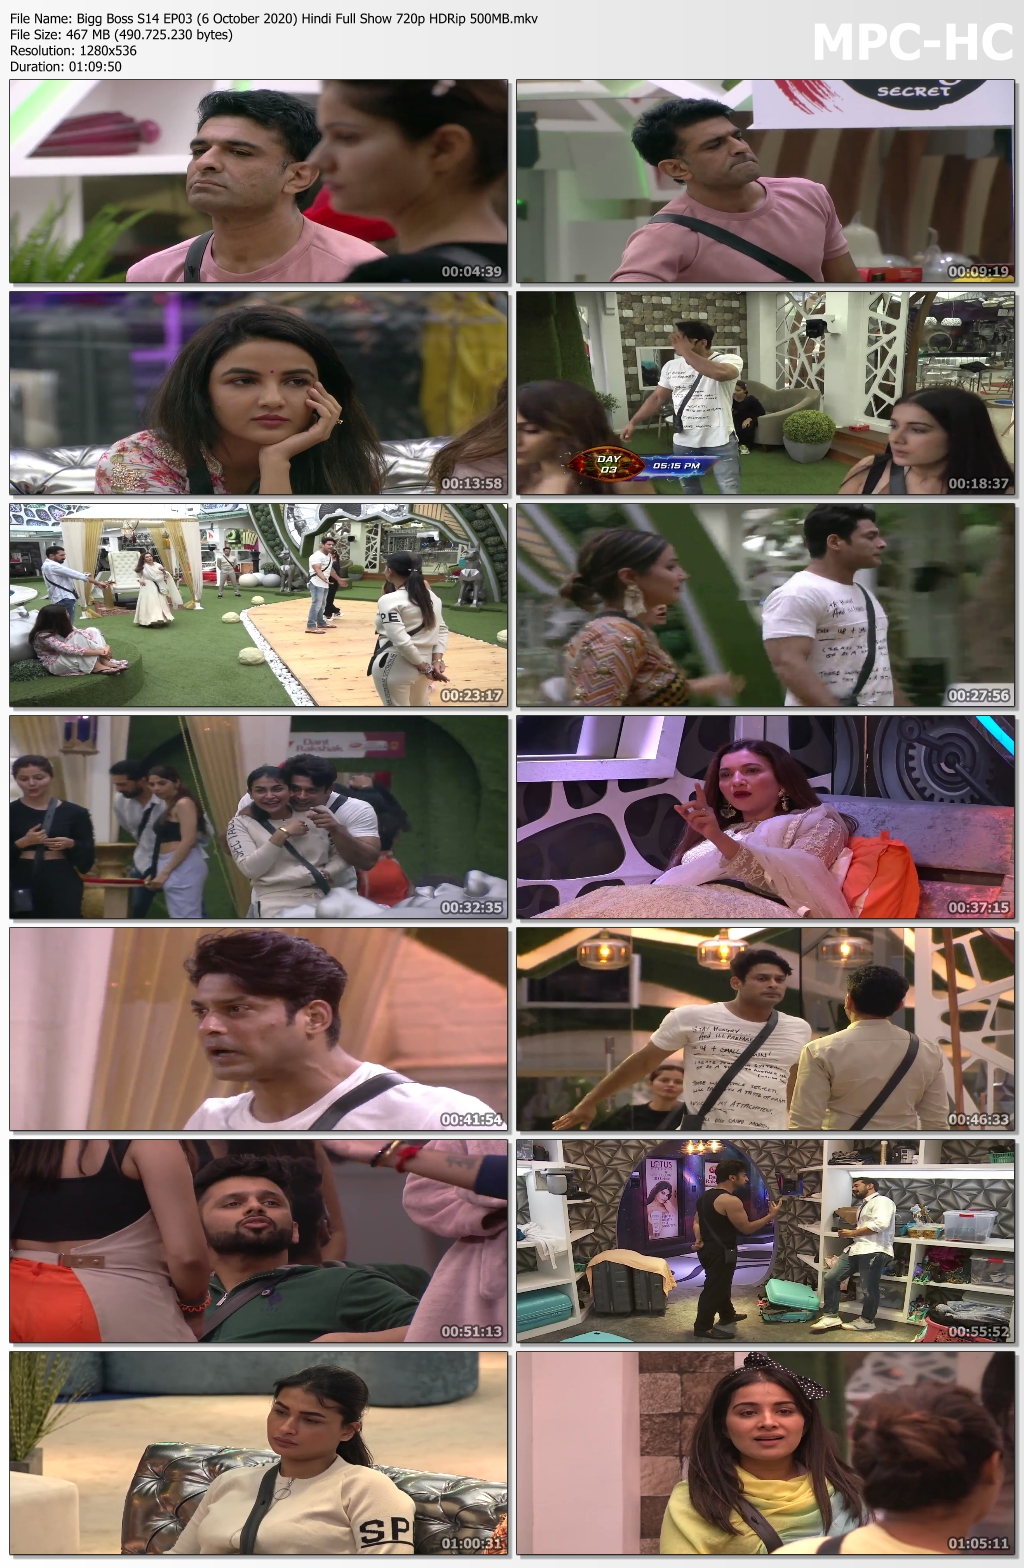 Bigg-Boss-S14-EP03-6-October-2020-Hindi-Full-Show-720p-HDRip-500-MB-mkv-thumbs